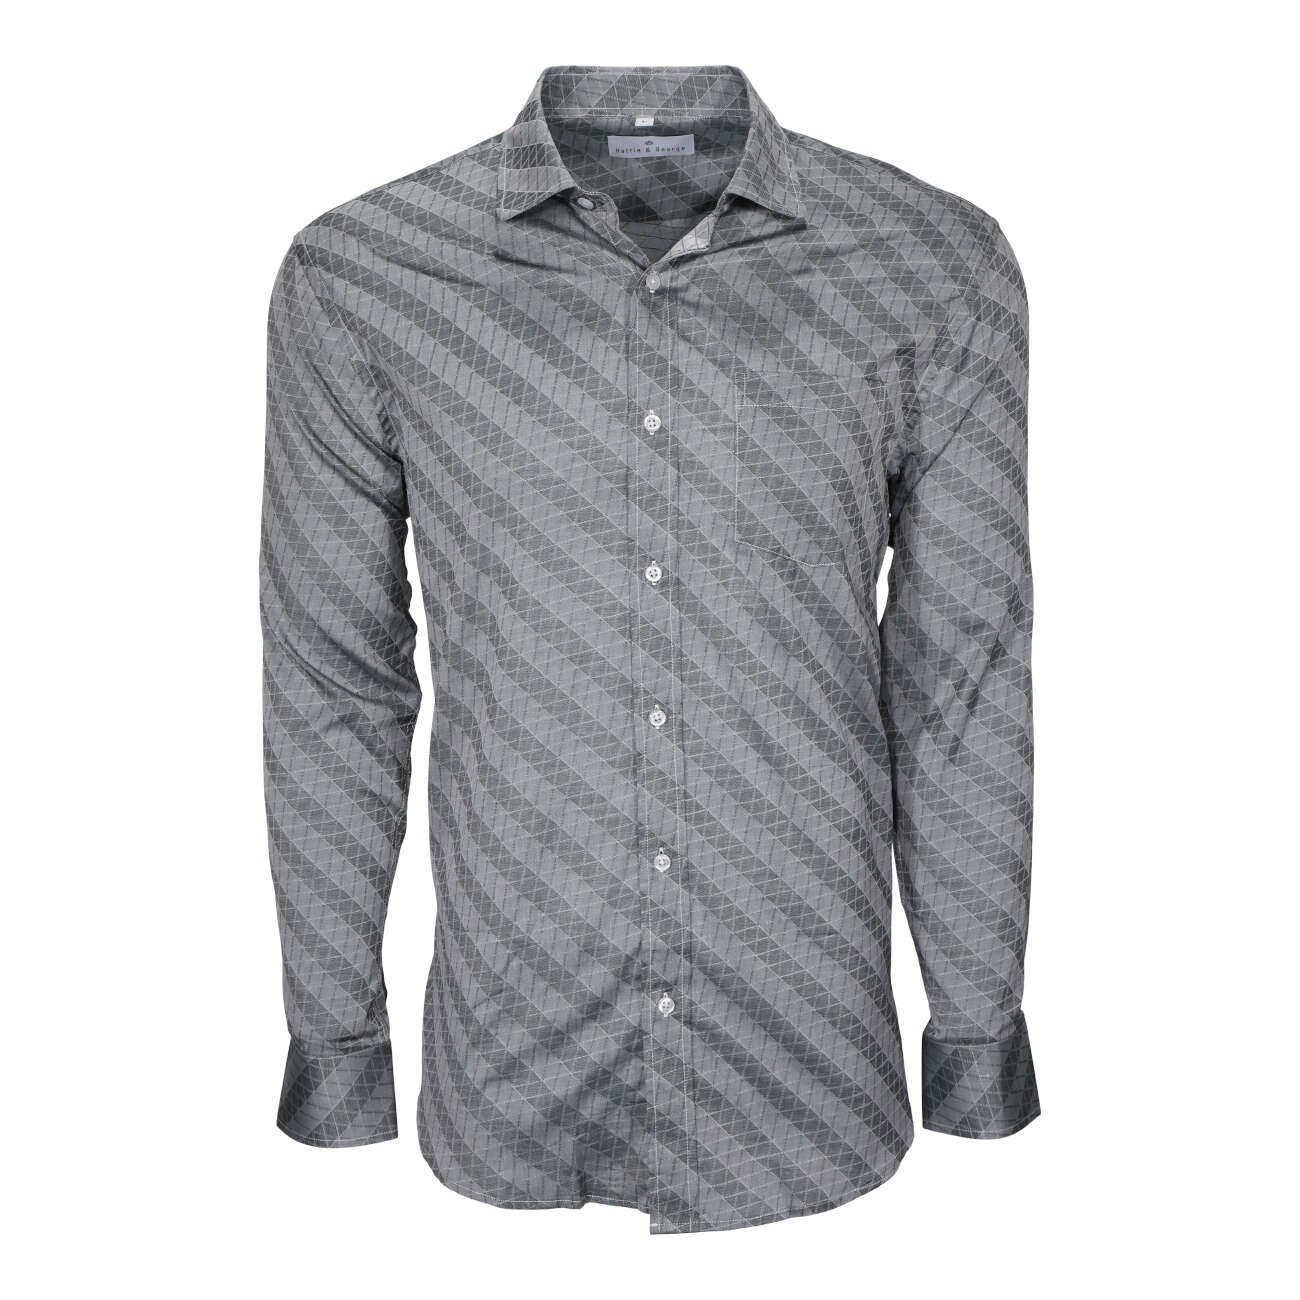 Steel Gray men's long sleeve dress shirt.